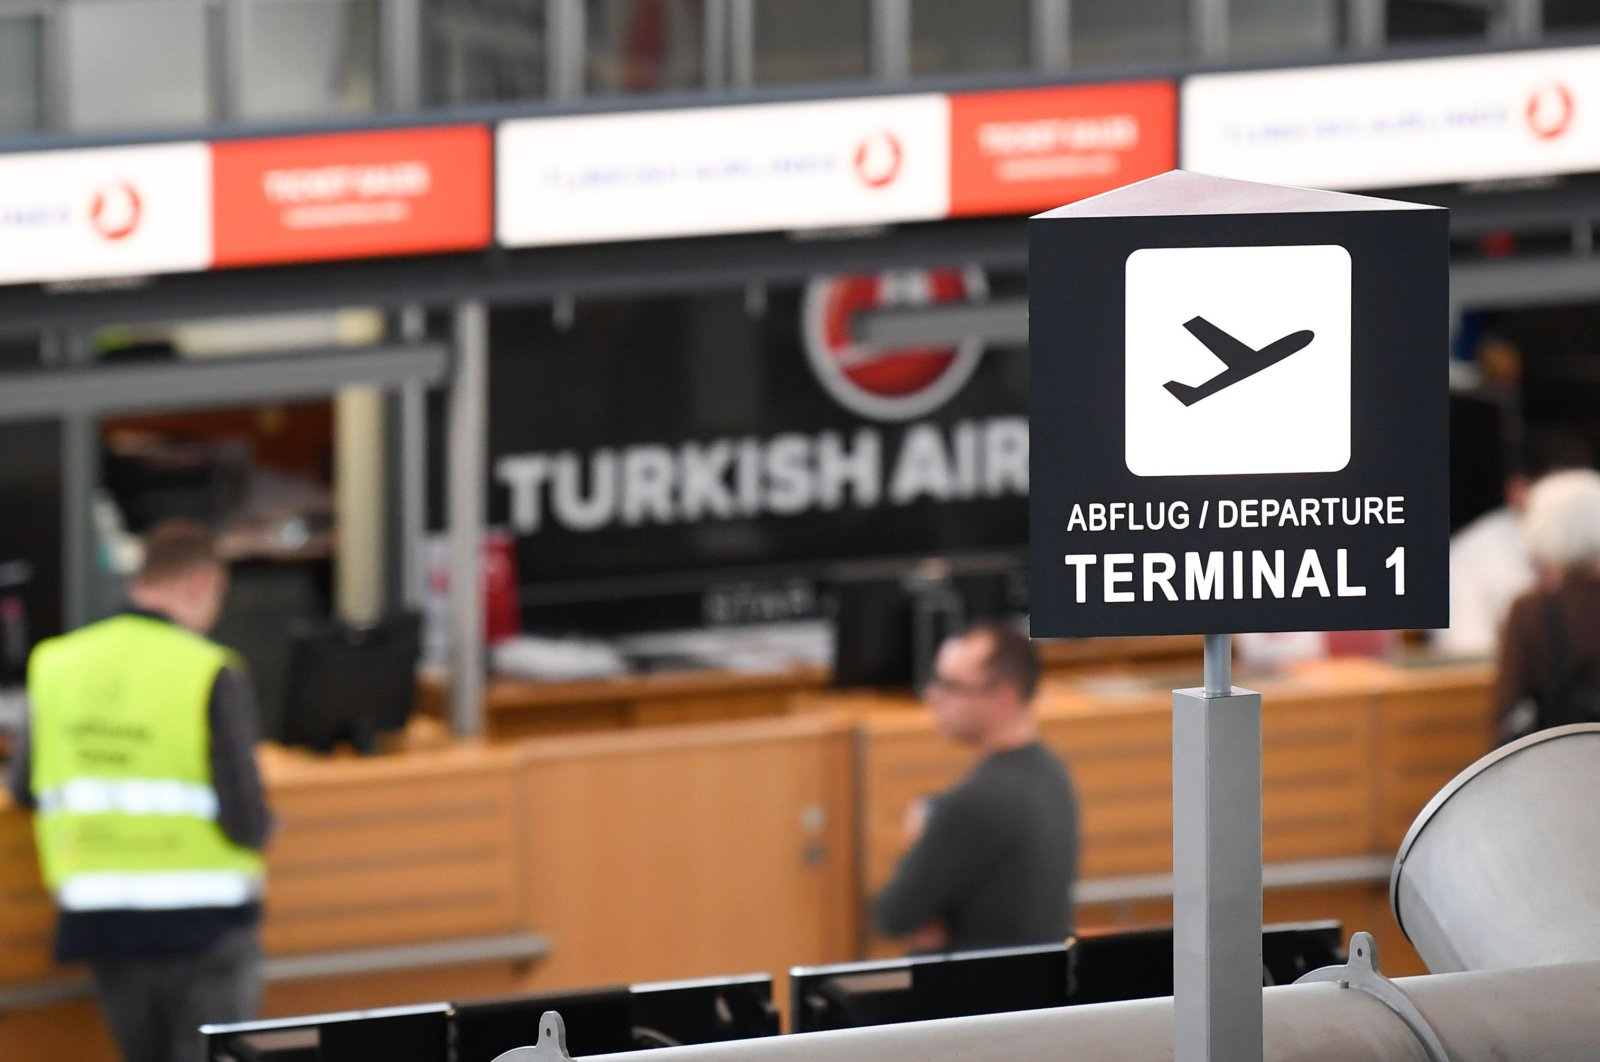 Few people stand at the counter of Turkish Airlines at the airport in Stuttgart, southern Germany, on March 16, 2020. (AFP Photo)